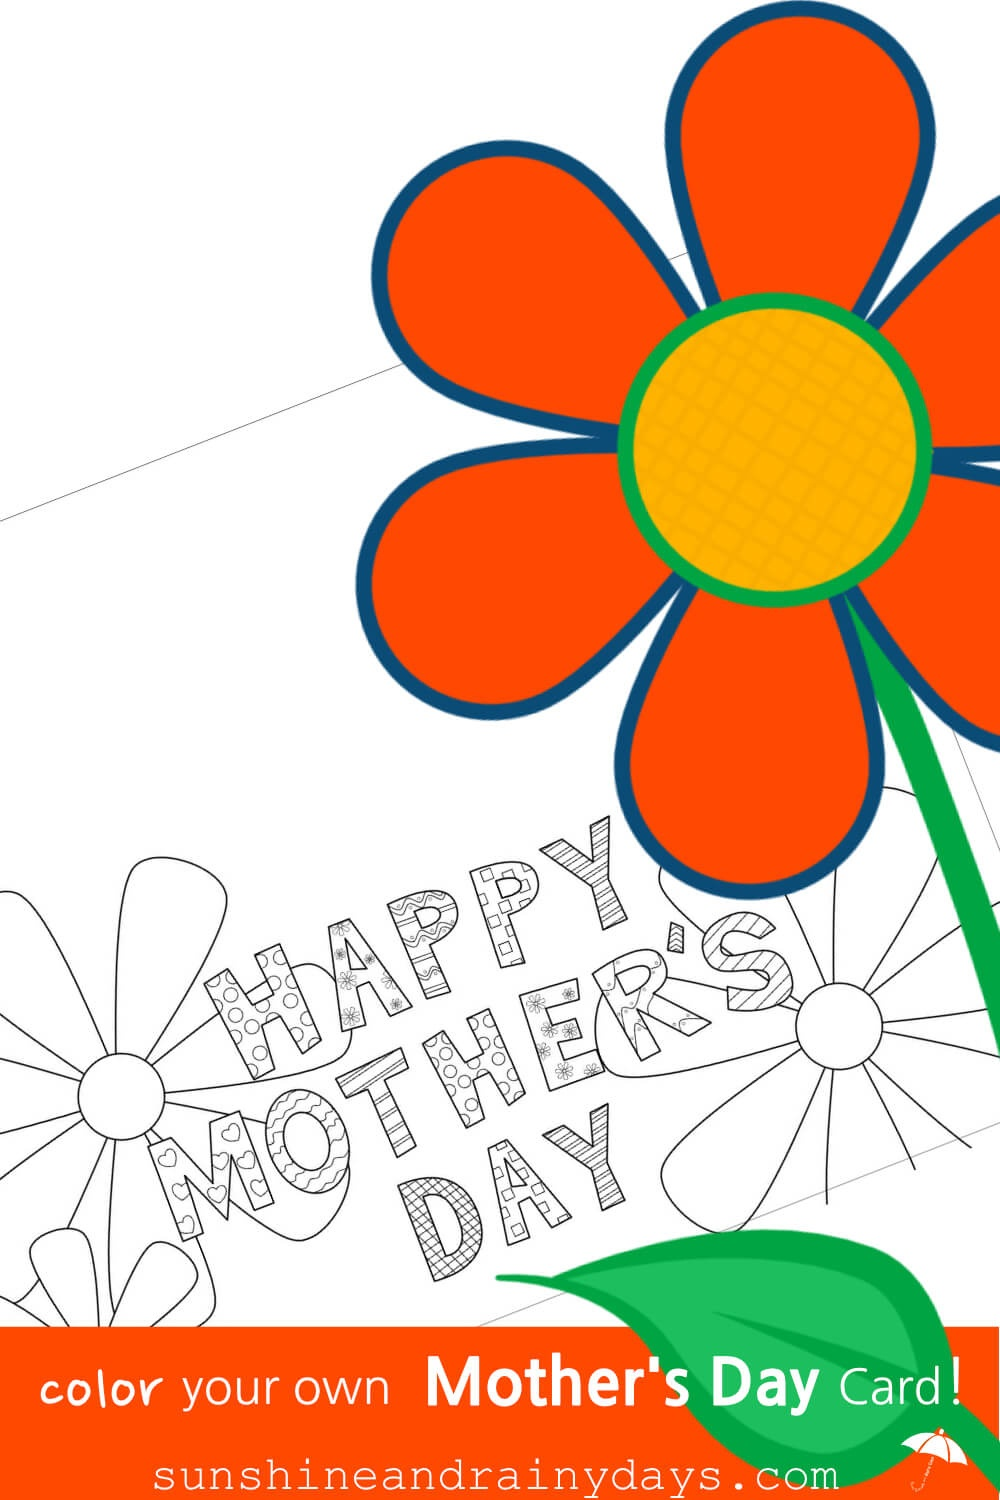 Mother's Day Coloring Card - Sunshine And Rainy Days - Free Printable Funny Mother's Day Cards